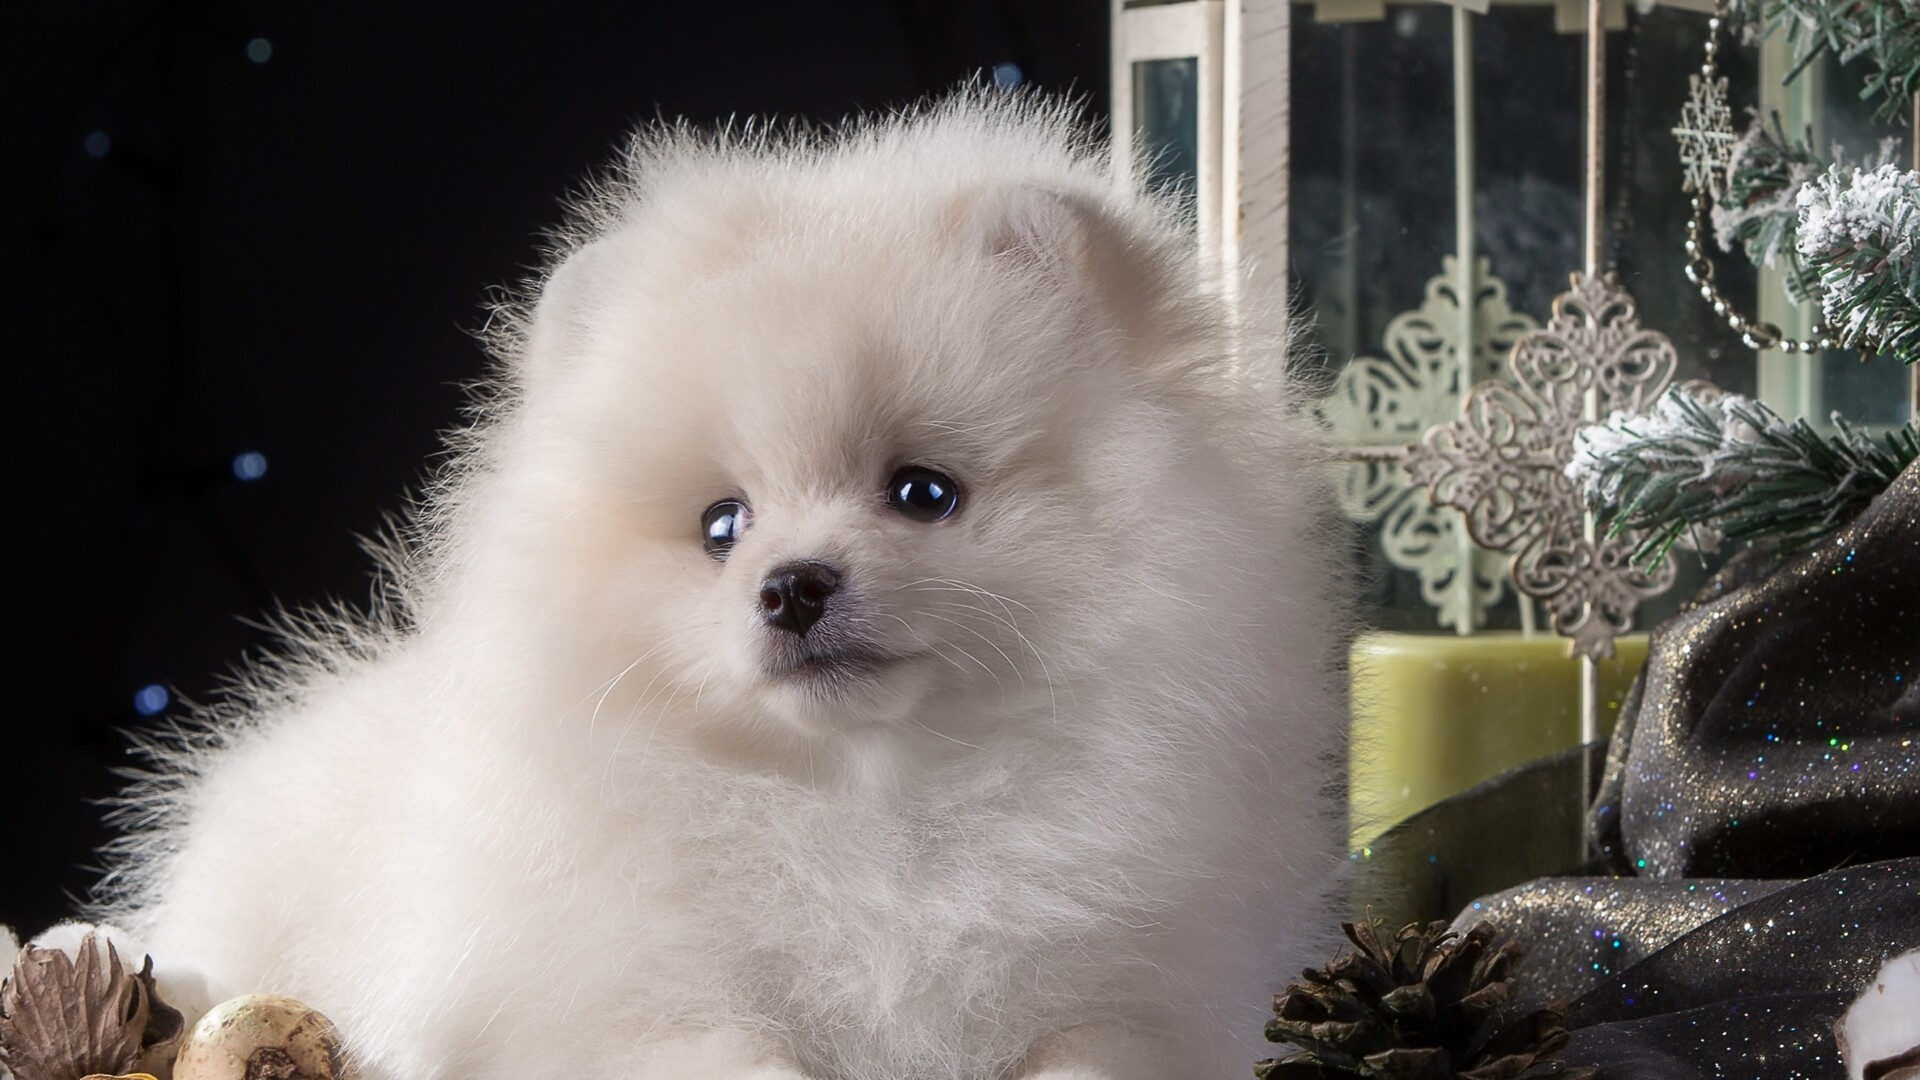 1920x1080 Puppy White Cute Laptop Full Hd 1080p Hd 4k Wallpapers Images Backgrounds Photos And Pictures